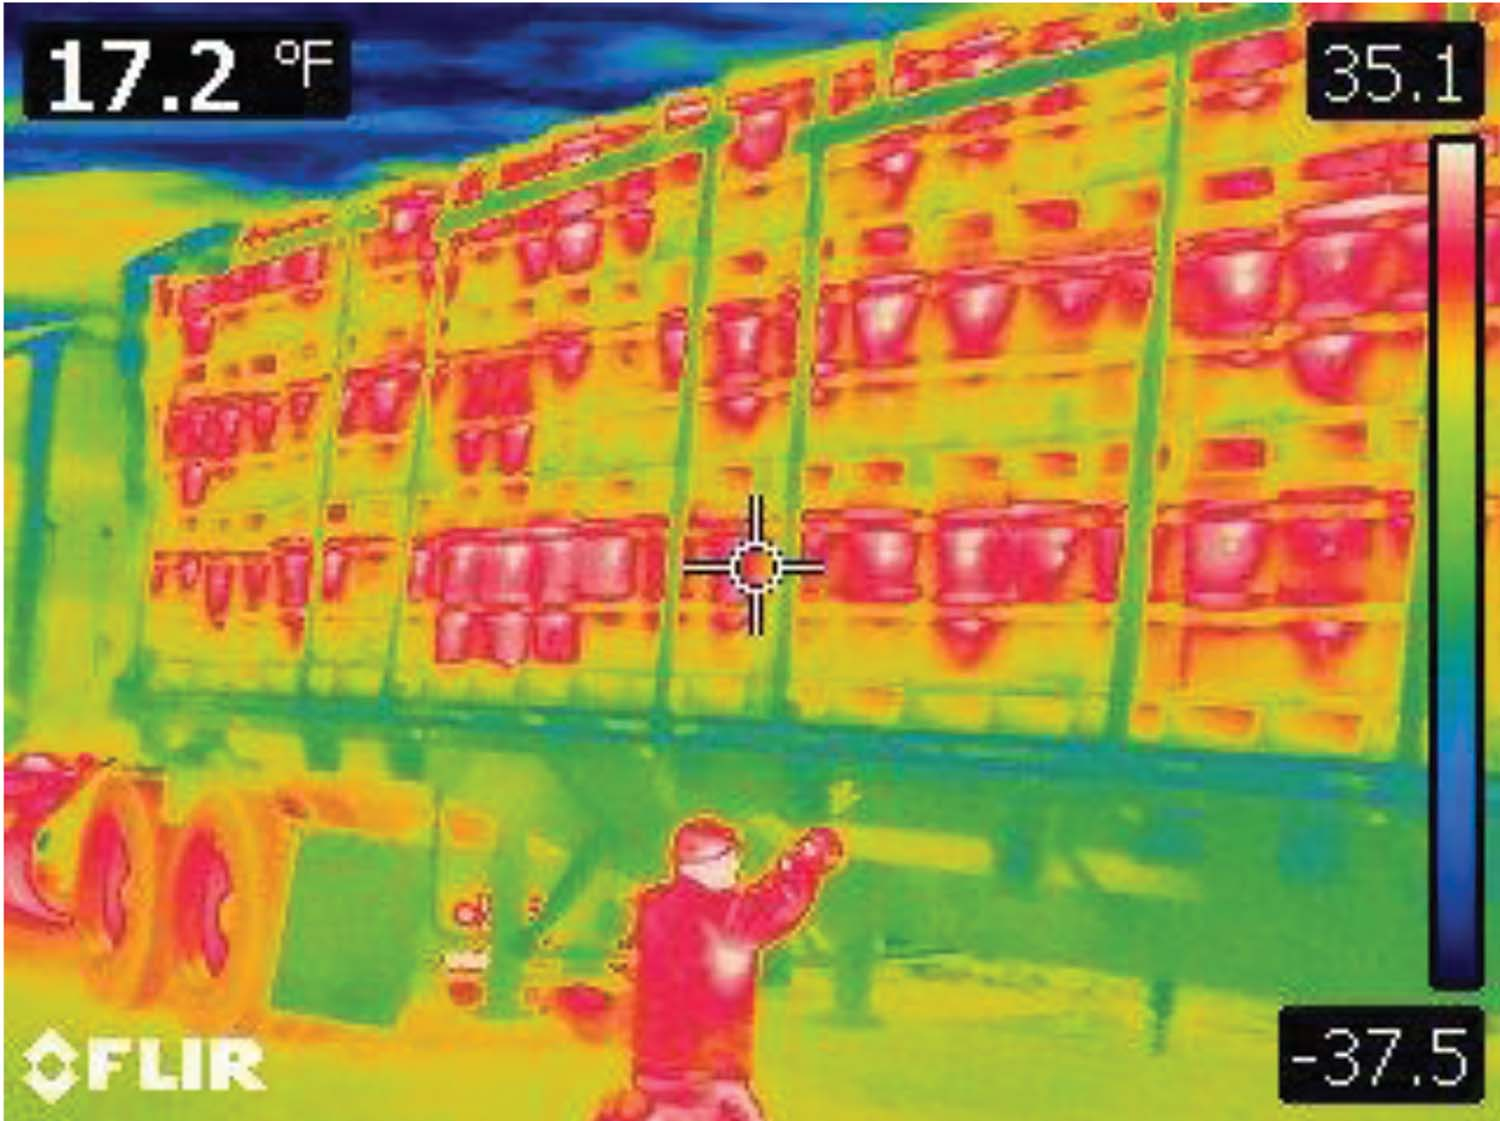 FLIR E60, Strapping hives, truck headed for California, 17.2° Air Temperature, 7:22 p.m.